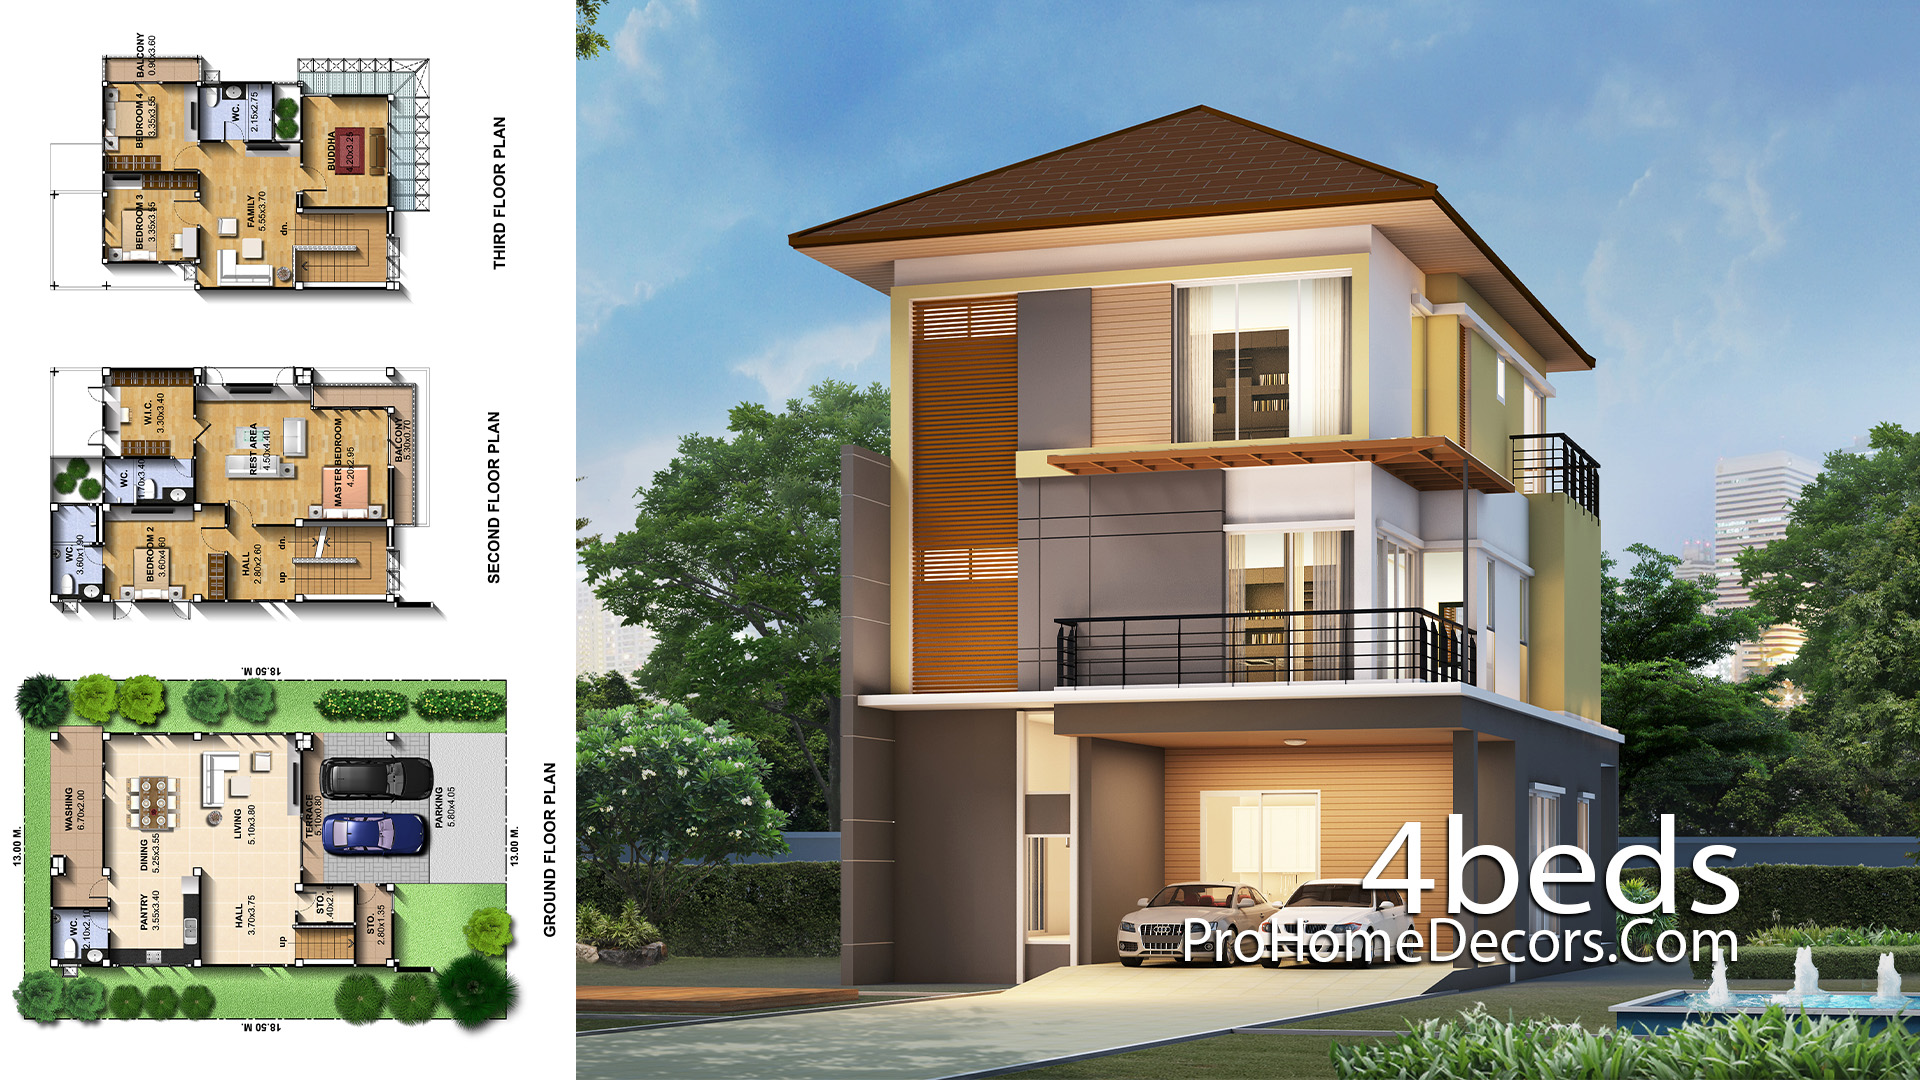 House Plans Idea 8.7x13 Meter with 4 Bedrooms